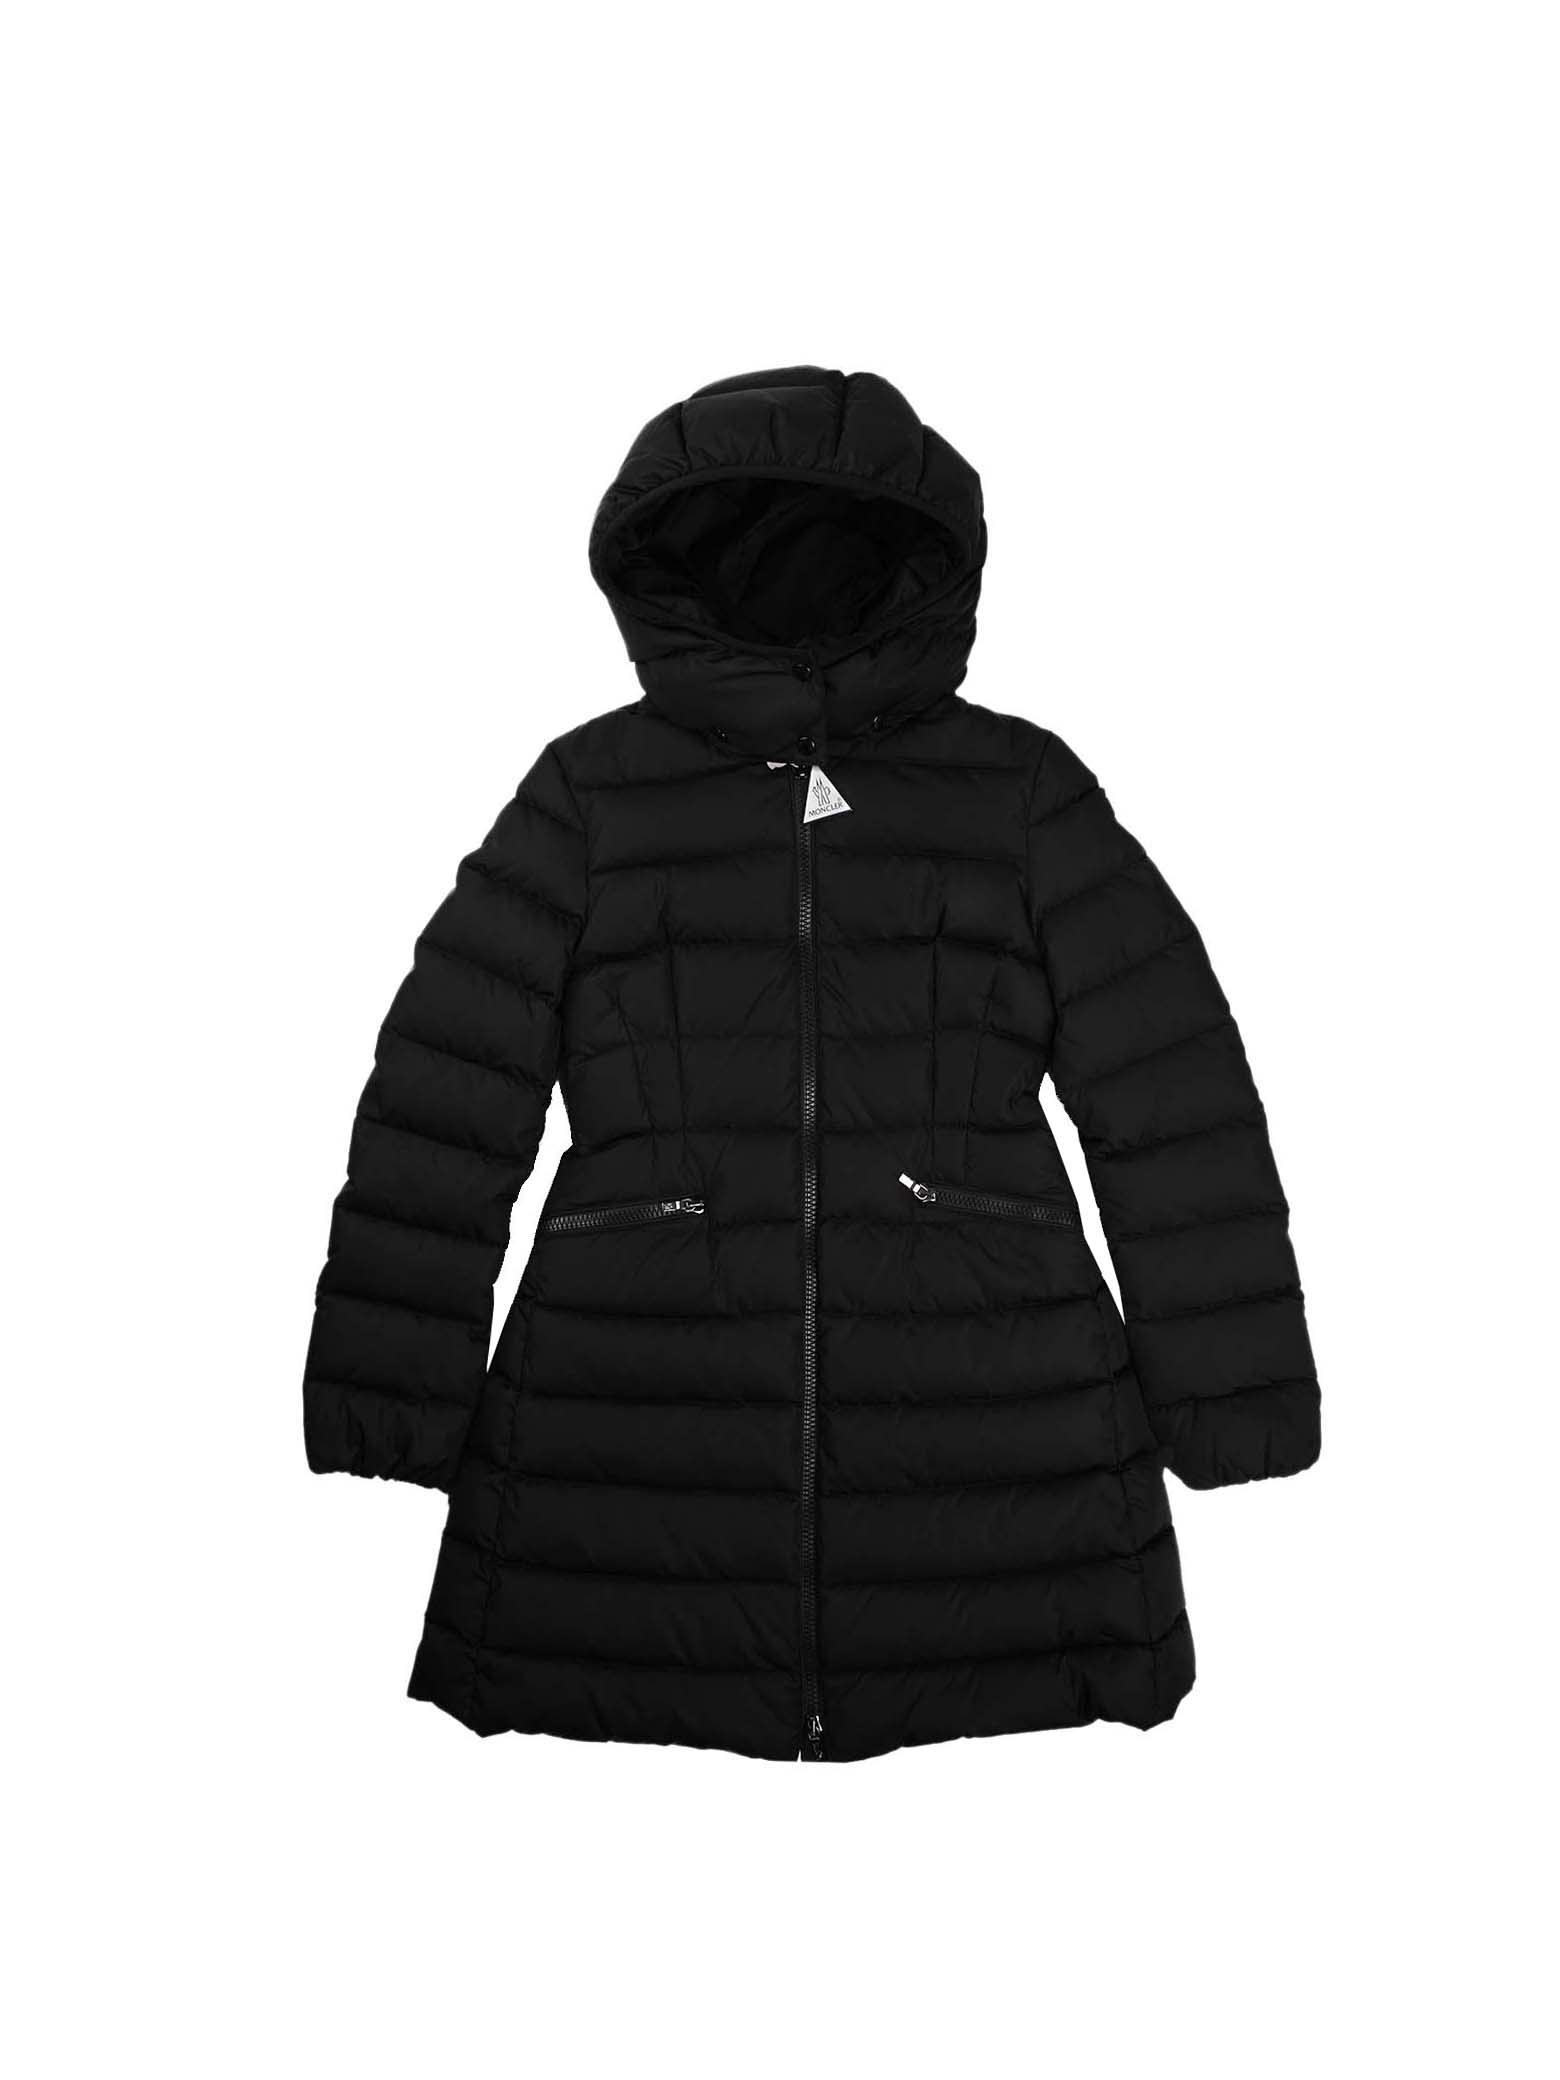 Moncler Charpal Black Long Jacket With Hood